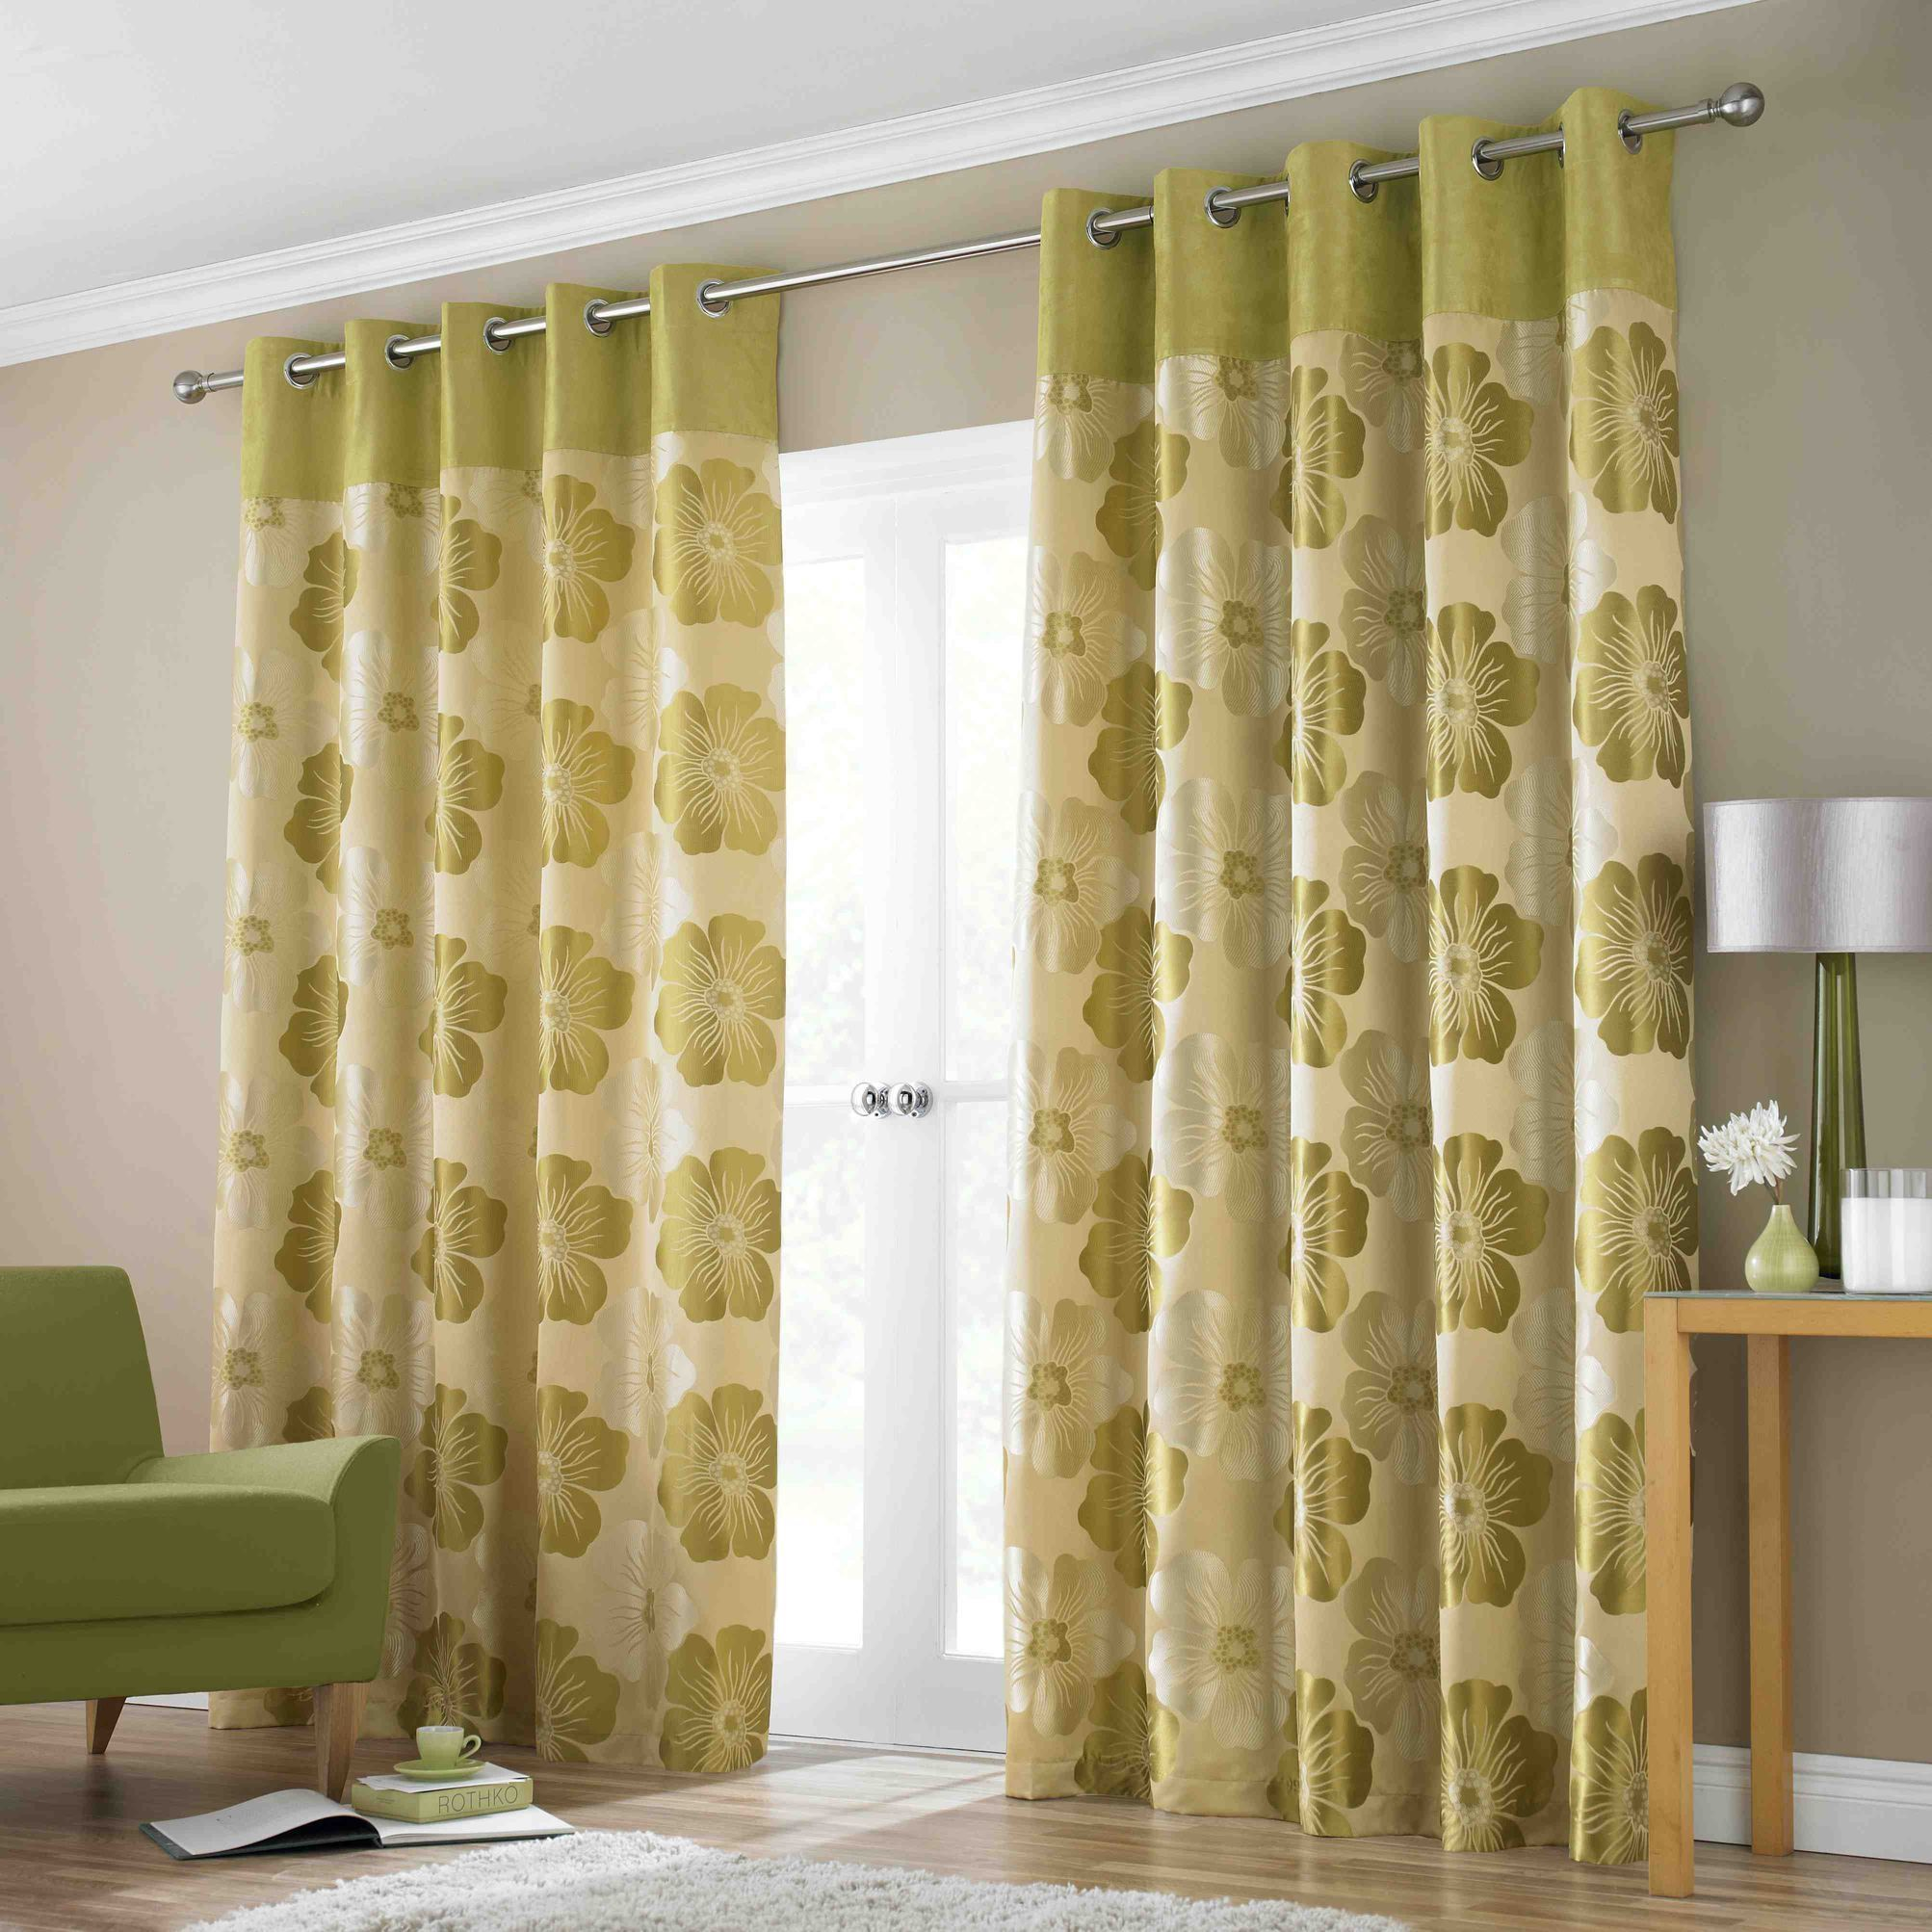 http://zynna.in/curtain-design-company-gives-top-window-treatment ...